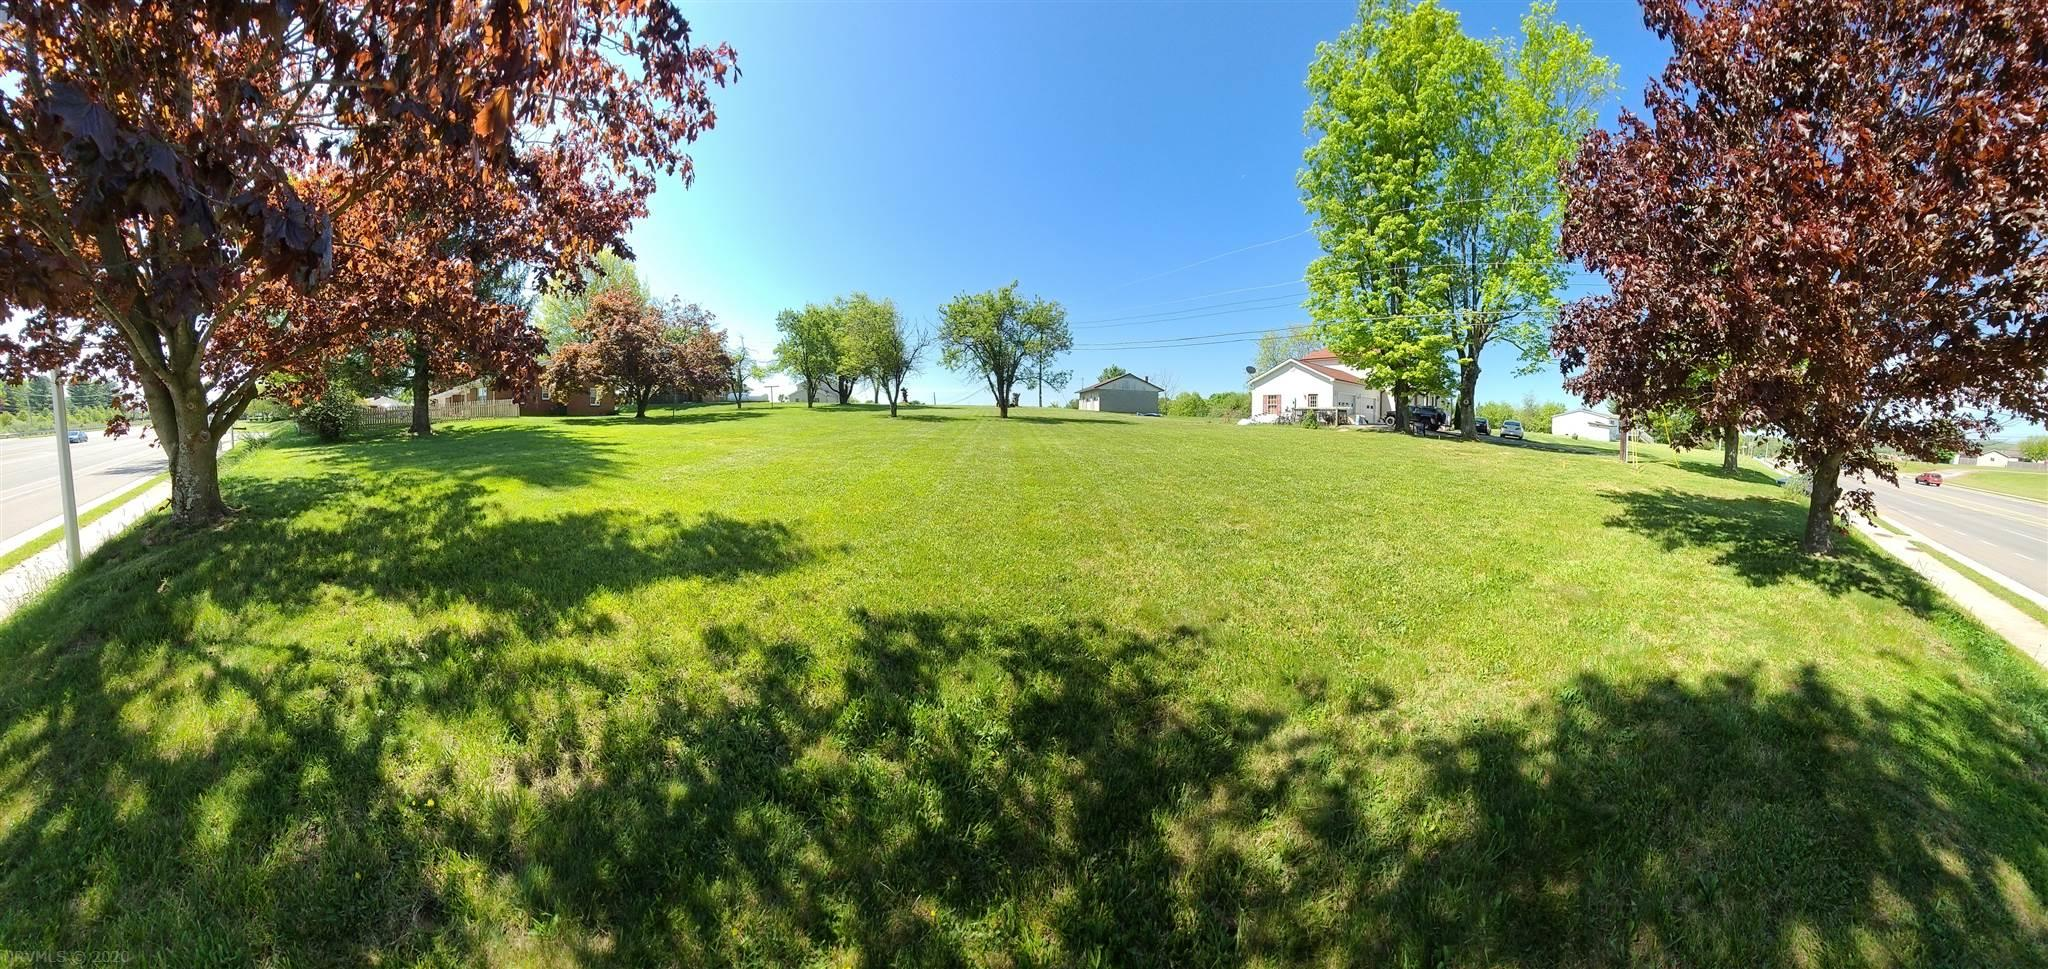 Exciting opportunity to build your dream home in a great location! Nice lot right off Peppers Ferry, in close proximity to all the shopping & dining Christiansburg offers. Only a short drive to both Radford and Blacksburg!